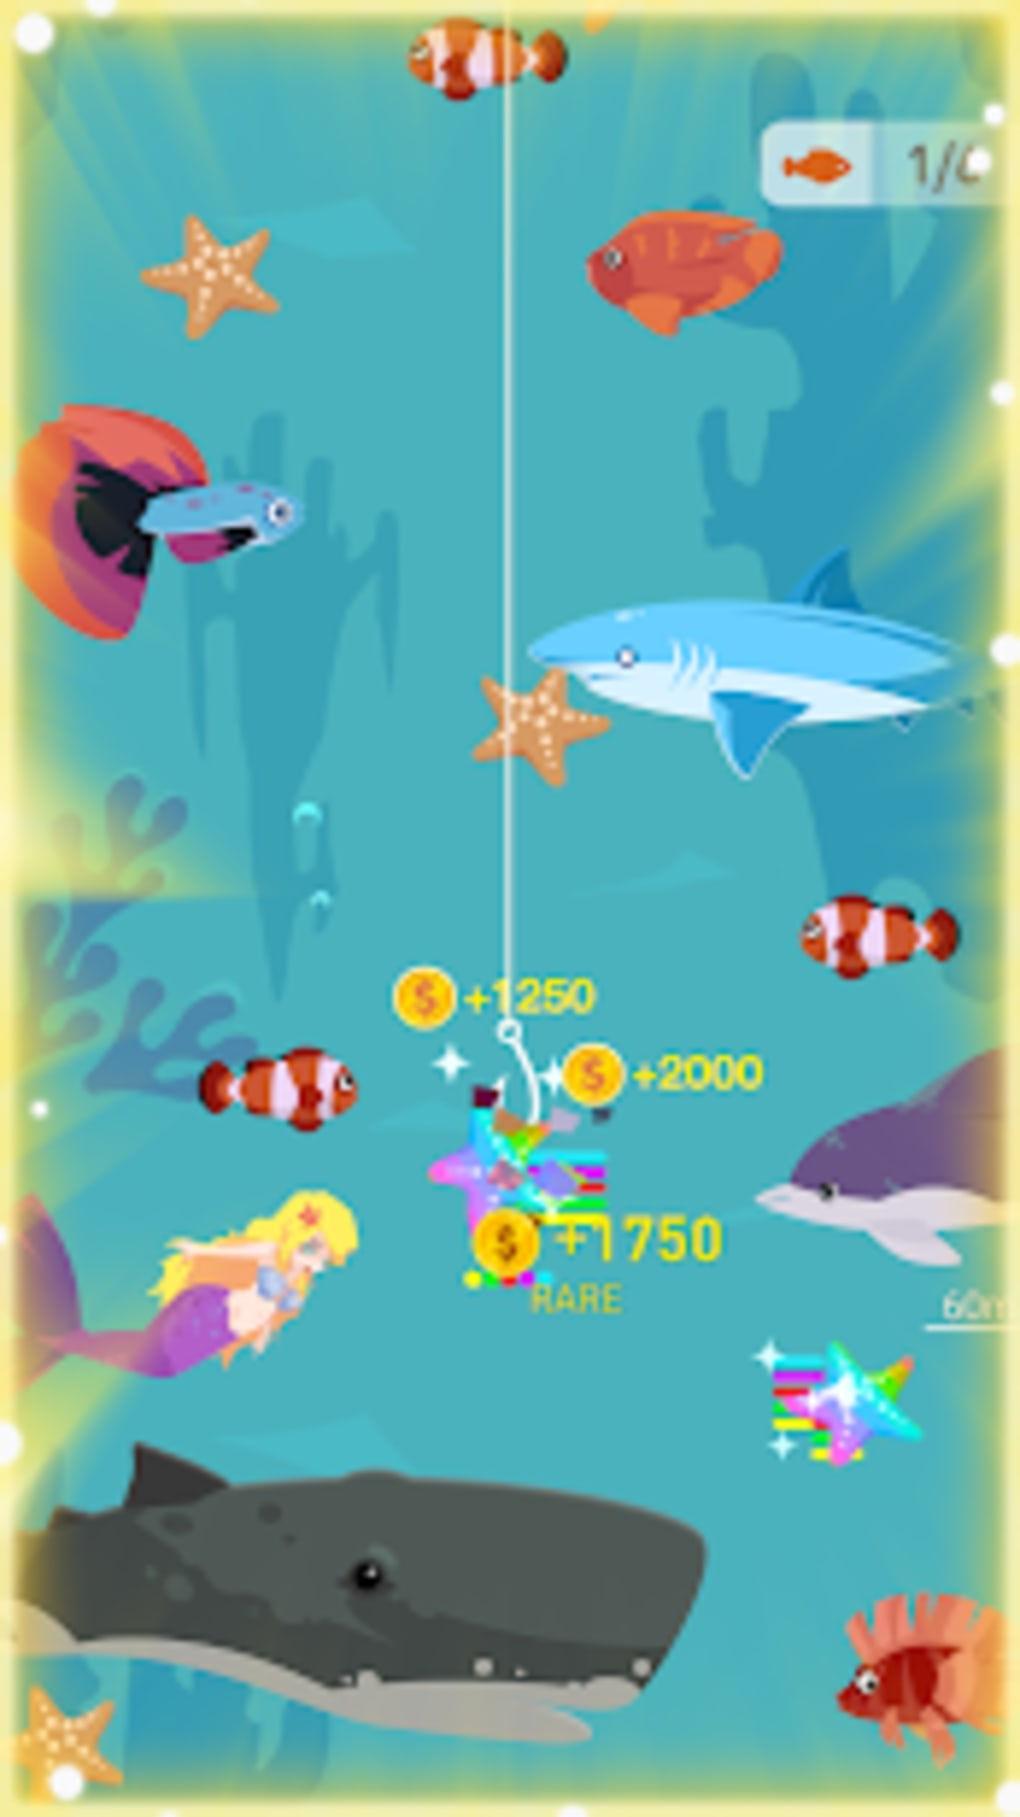 Happy Fishing - Catch Fish and Treasures for Android - Download